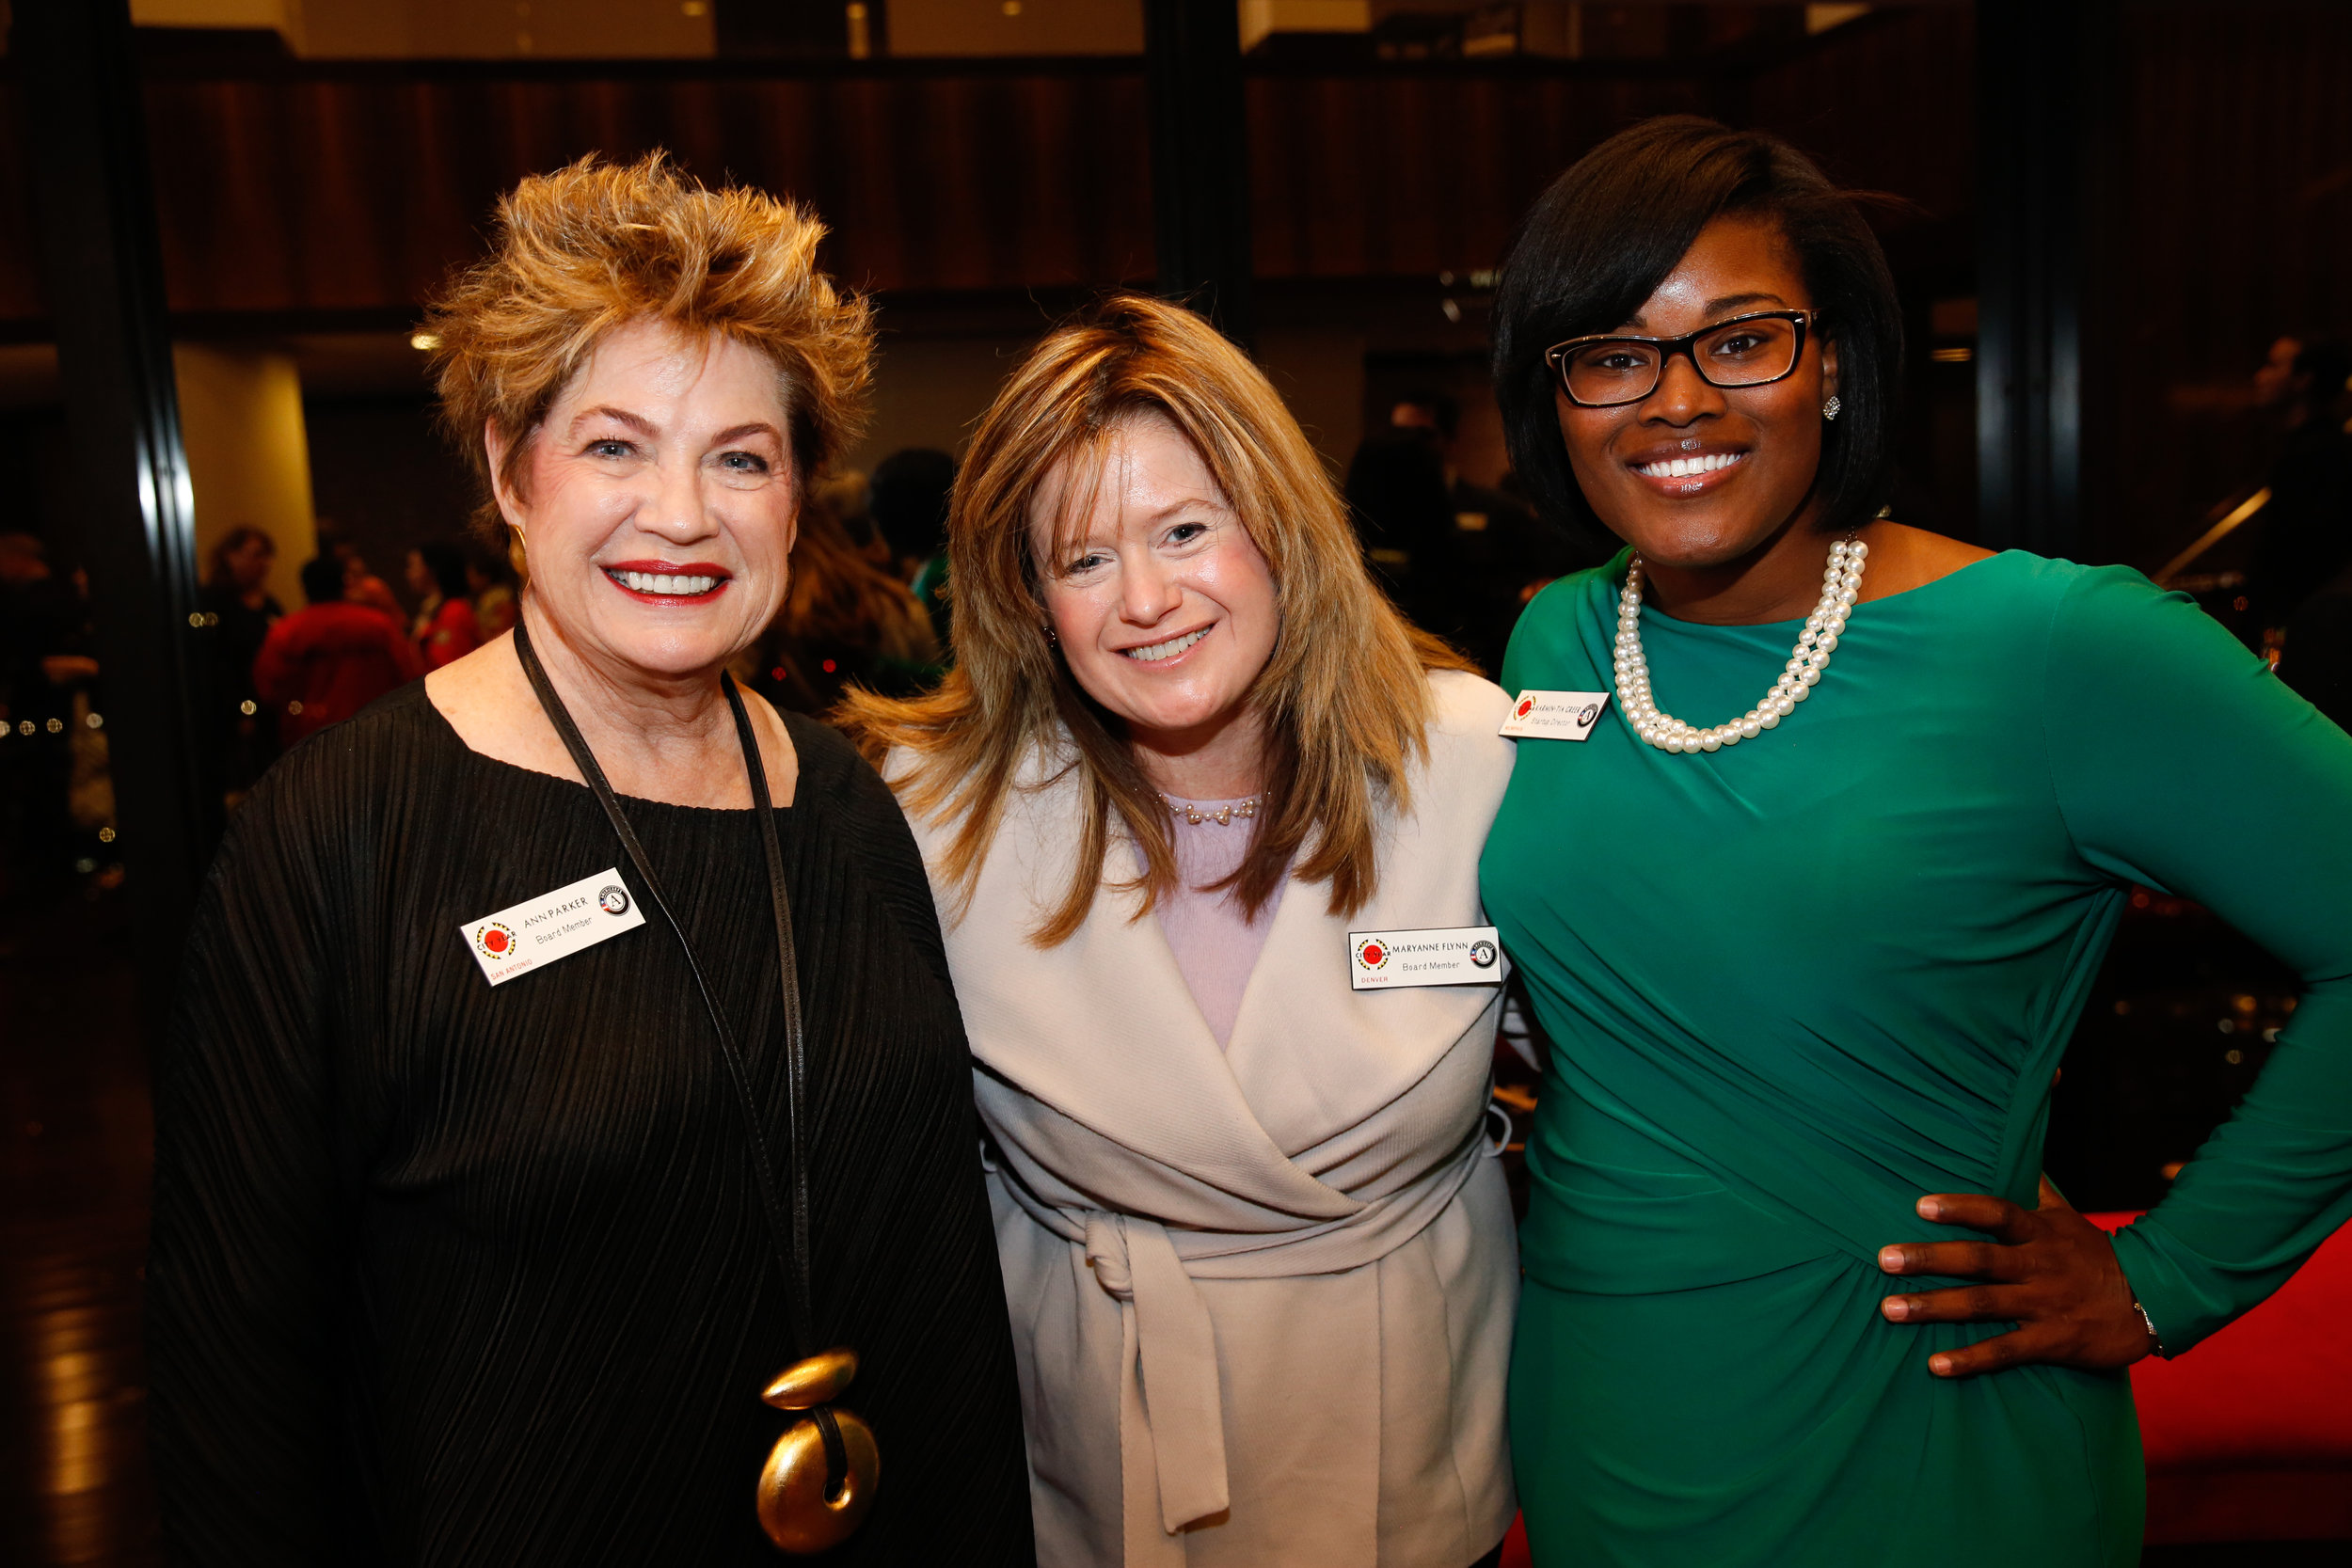 Ann Parker, Maryanne Flynn and Karmin-Tia Greer at the Bain Capital Reception